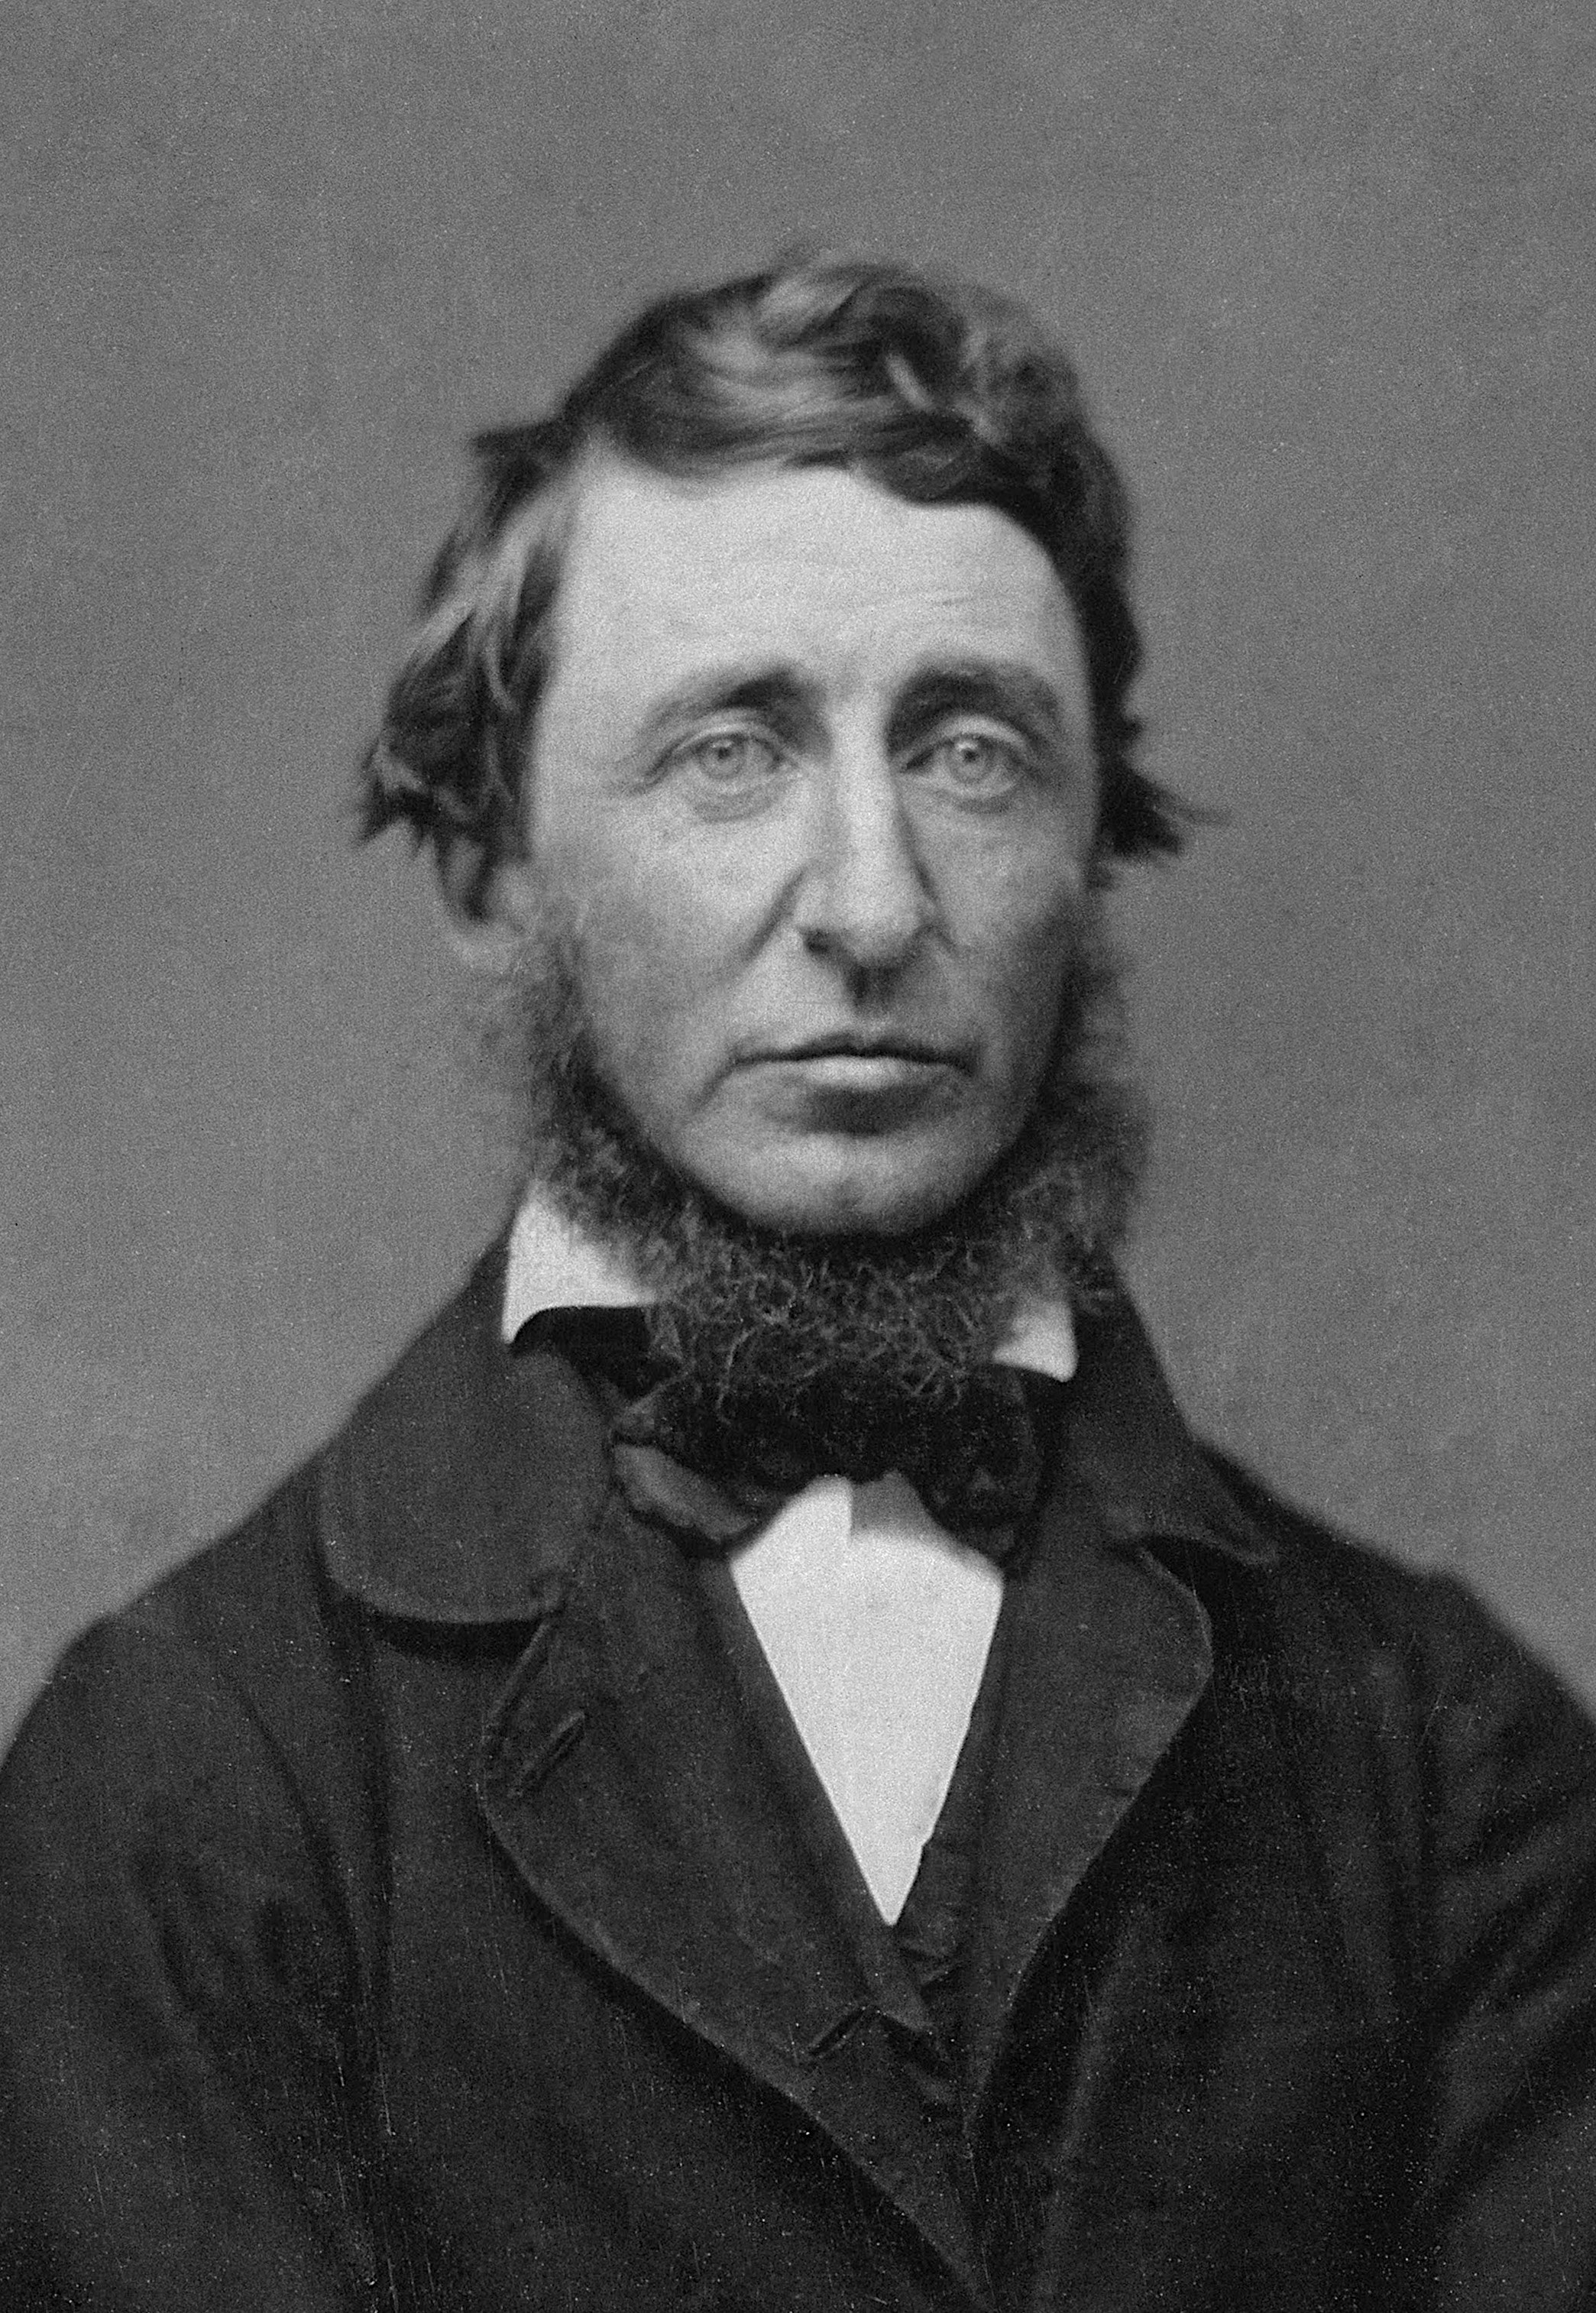 Henry David Thoreau (1817-1862), an 1856 daguerreotype by B. Maxham.